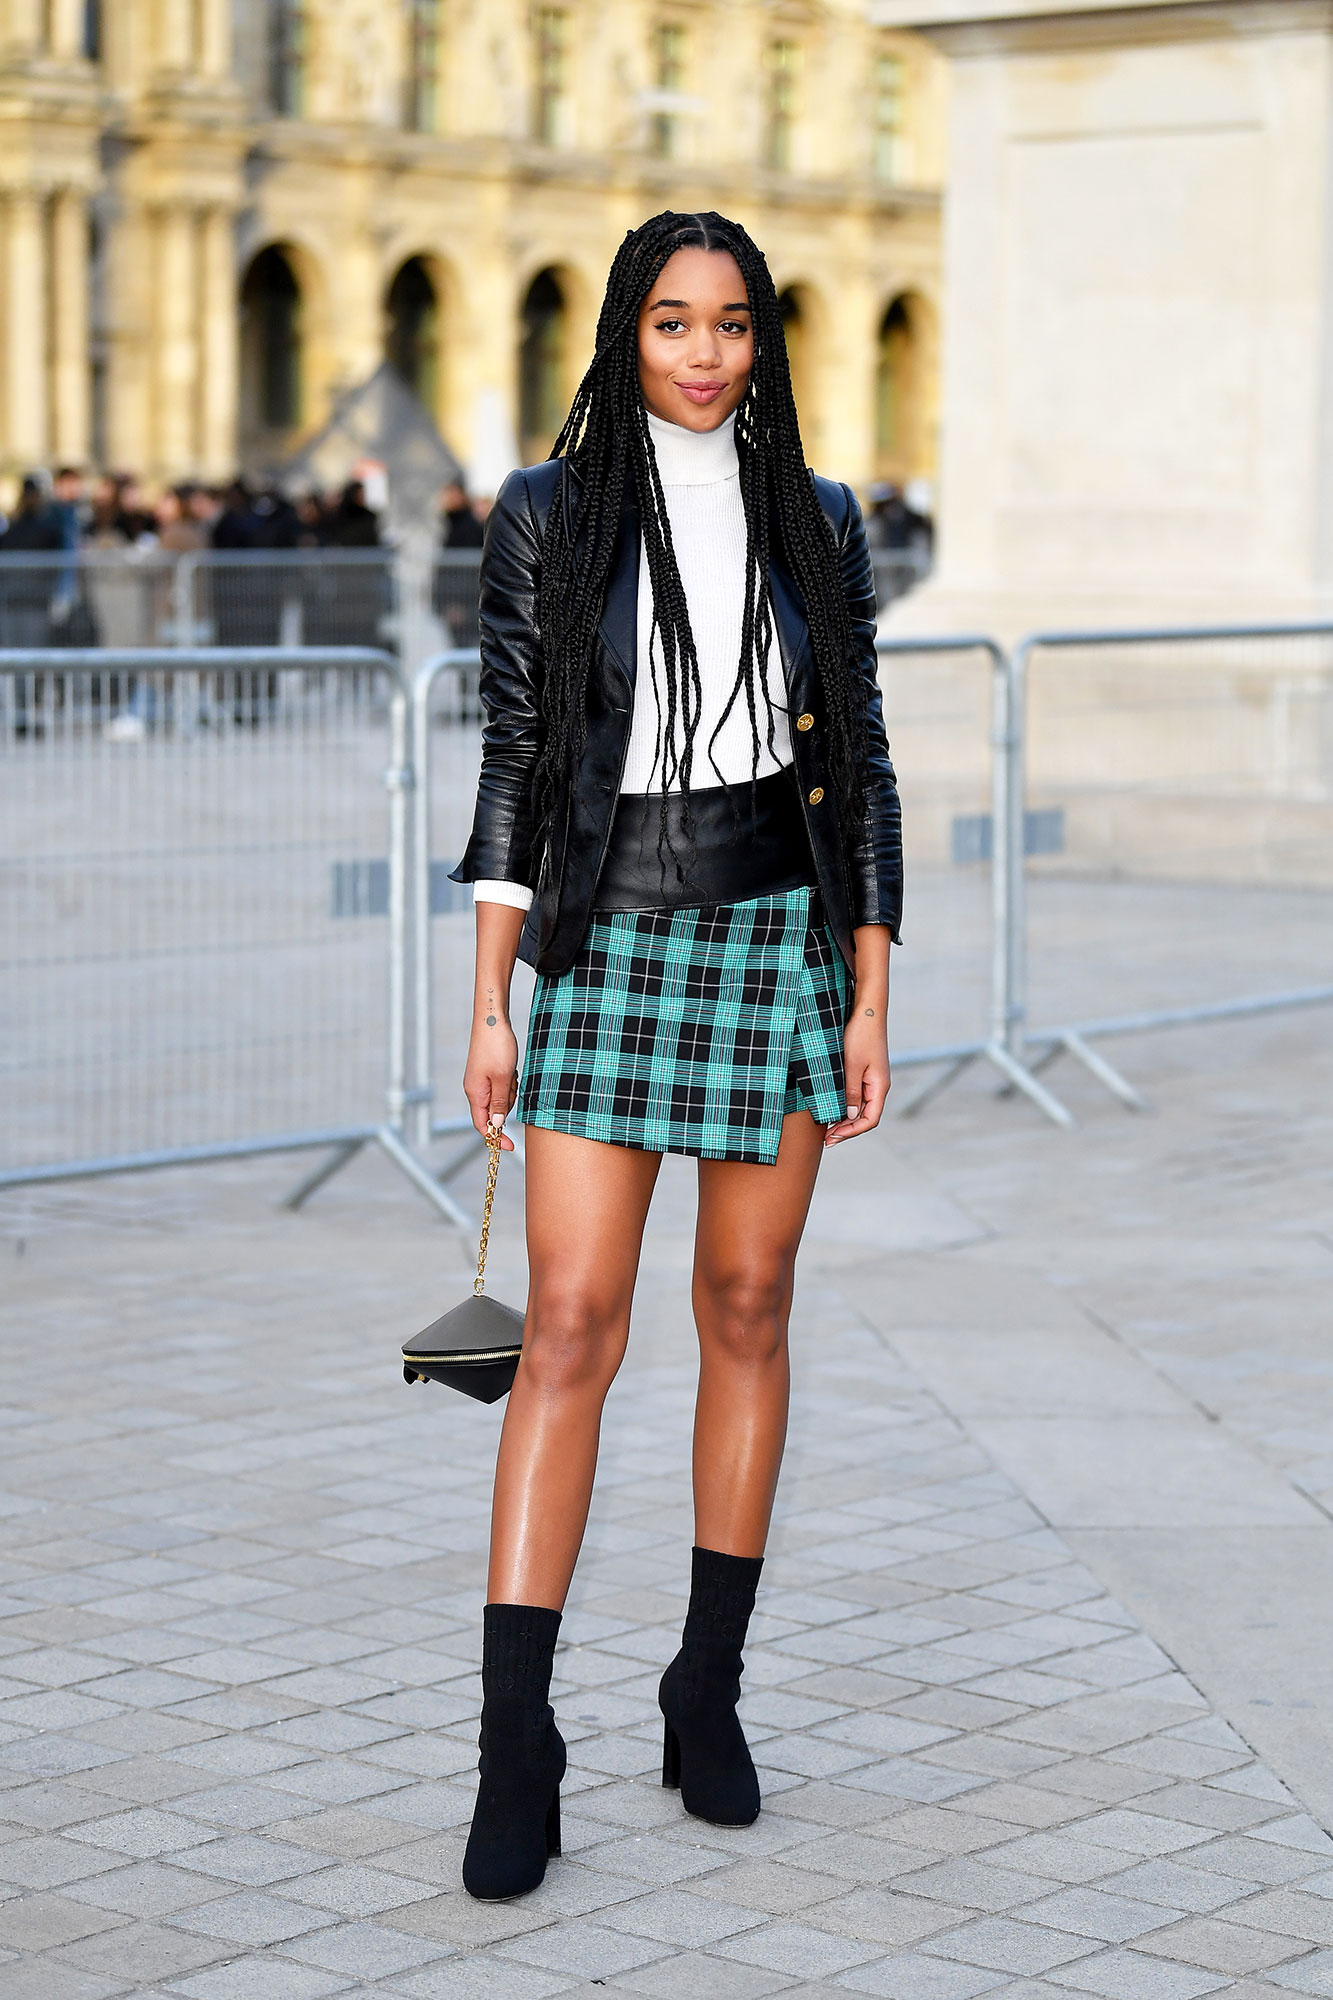 Laura Harrier Stars Closed Out Paris Fashion Week on a Sartorial High Note - After rocking Louis Vuitton on the red carpet all awards season, the BlackKklansman actress showed some leg in a plaid miniskirt at the fashion house's show on Tuesday, March 5.